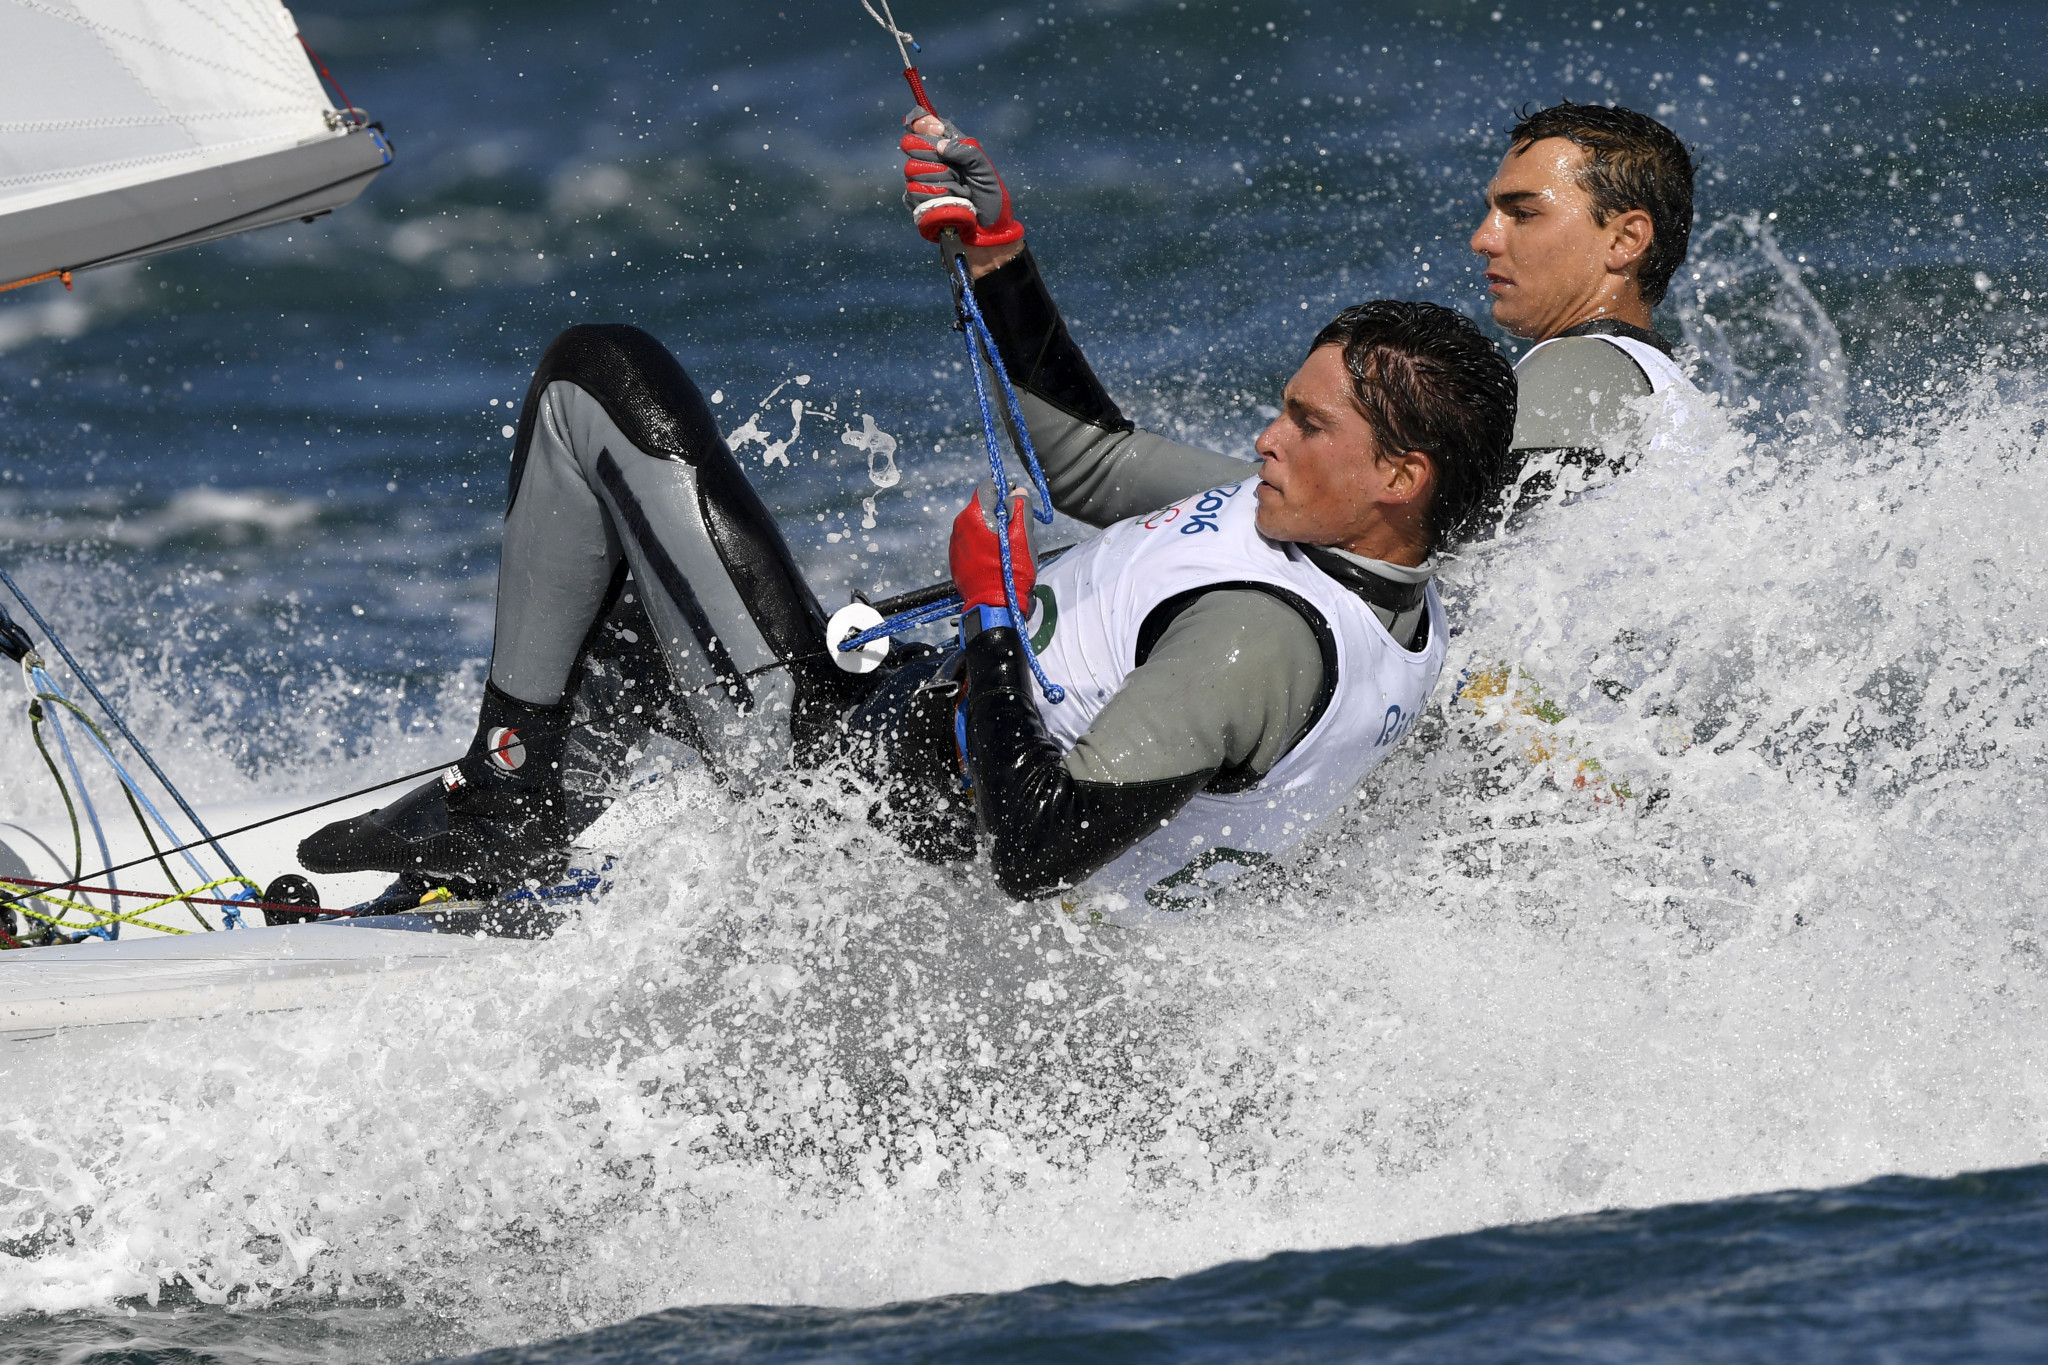 Spain's Jordi Xammar, right, and Nicolás Rodríguez have retaken the lead in the men's event at the 470 World Championships on Enoshima Bay in Japan ©Getty Images